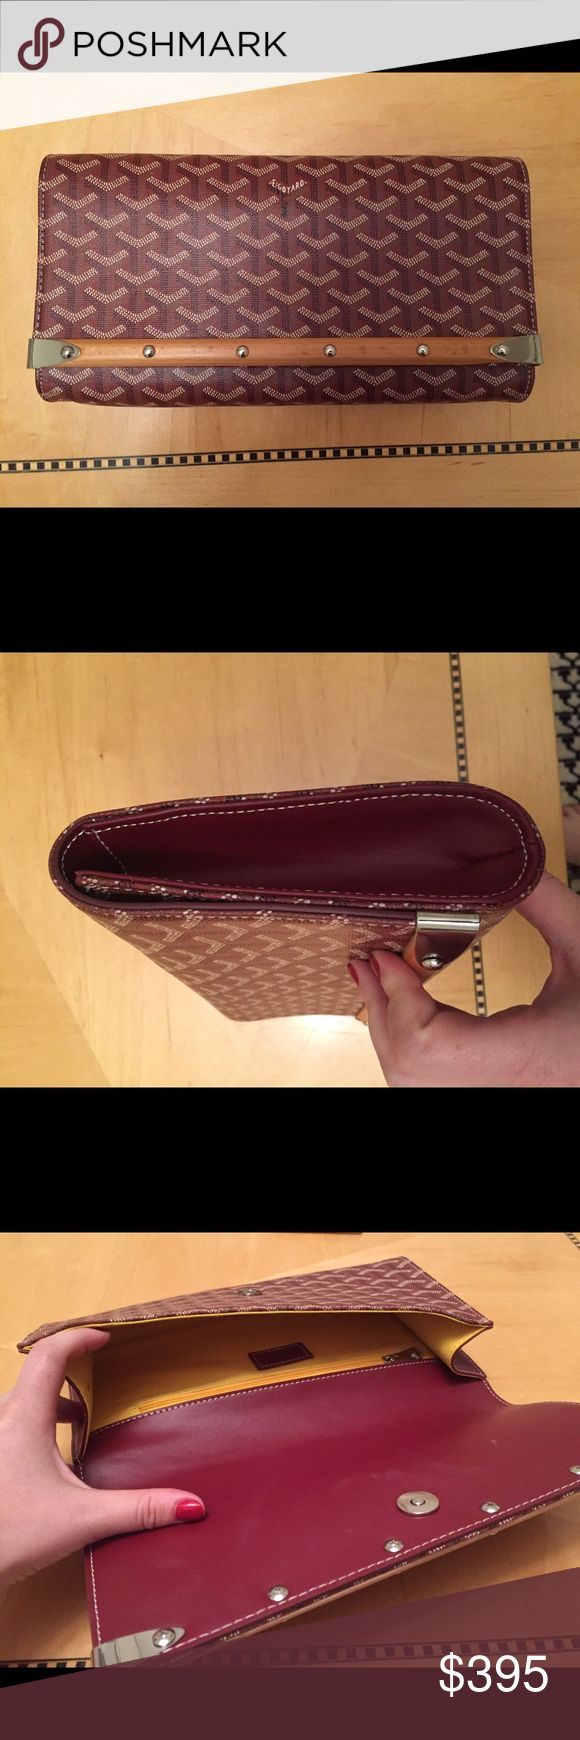 """Goyard clutch bag wallet *open to offers* Great preowned condition with some signs of wear. Measures about 12""""x 1.5"""" x 5"""". Wood trim, silver finishings and a plum colored coated canvas. A stunning gift. Goyard Bags Clutches & Wristlets"""